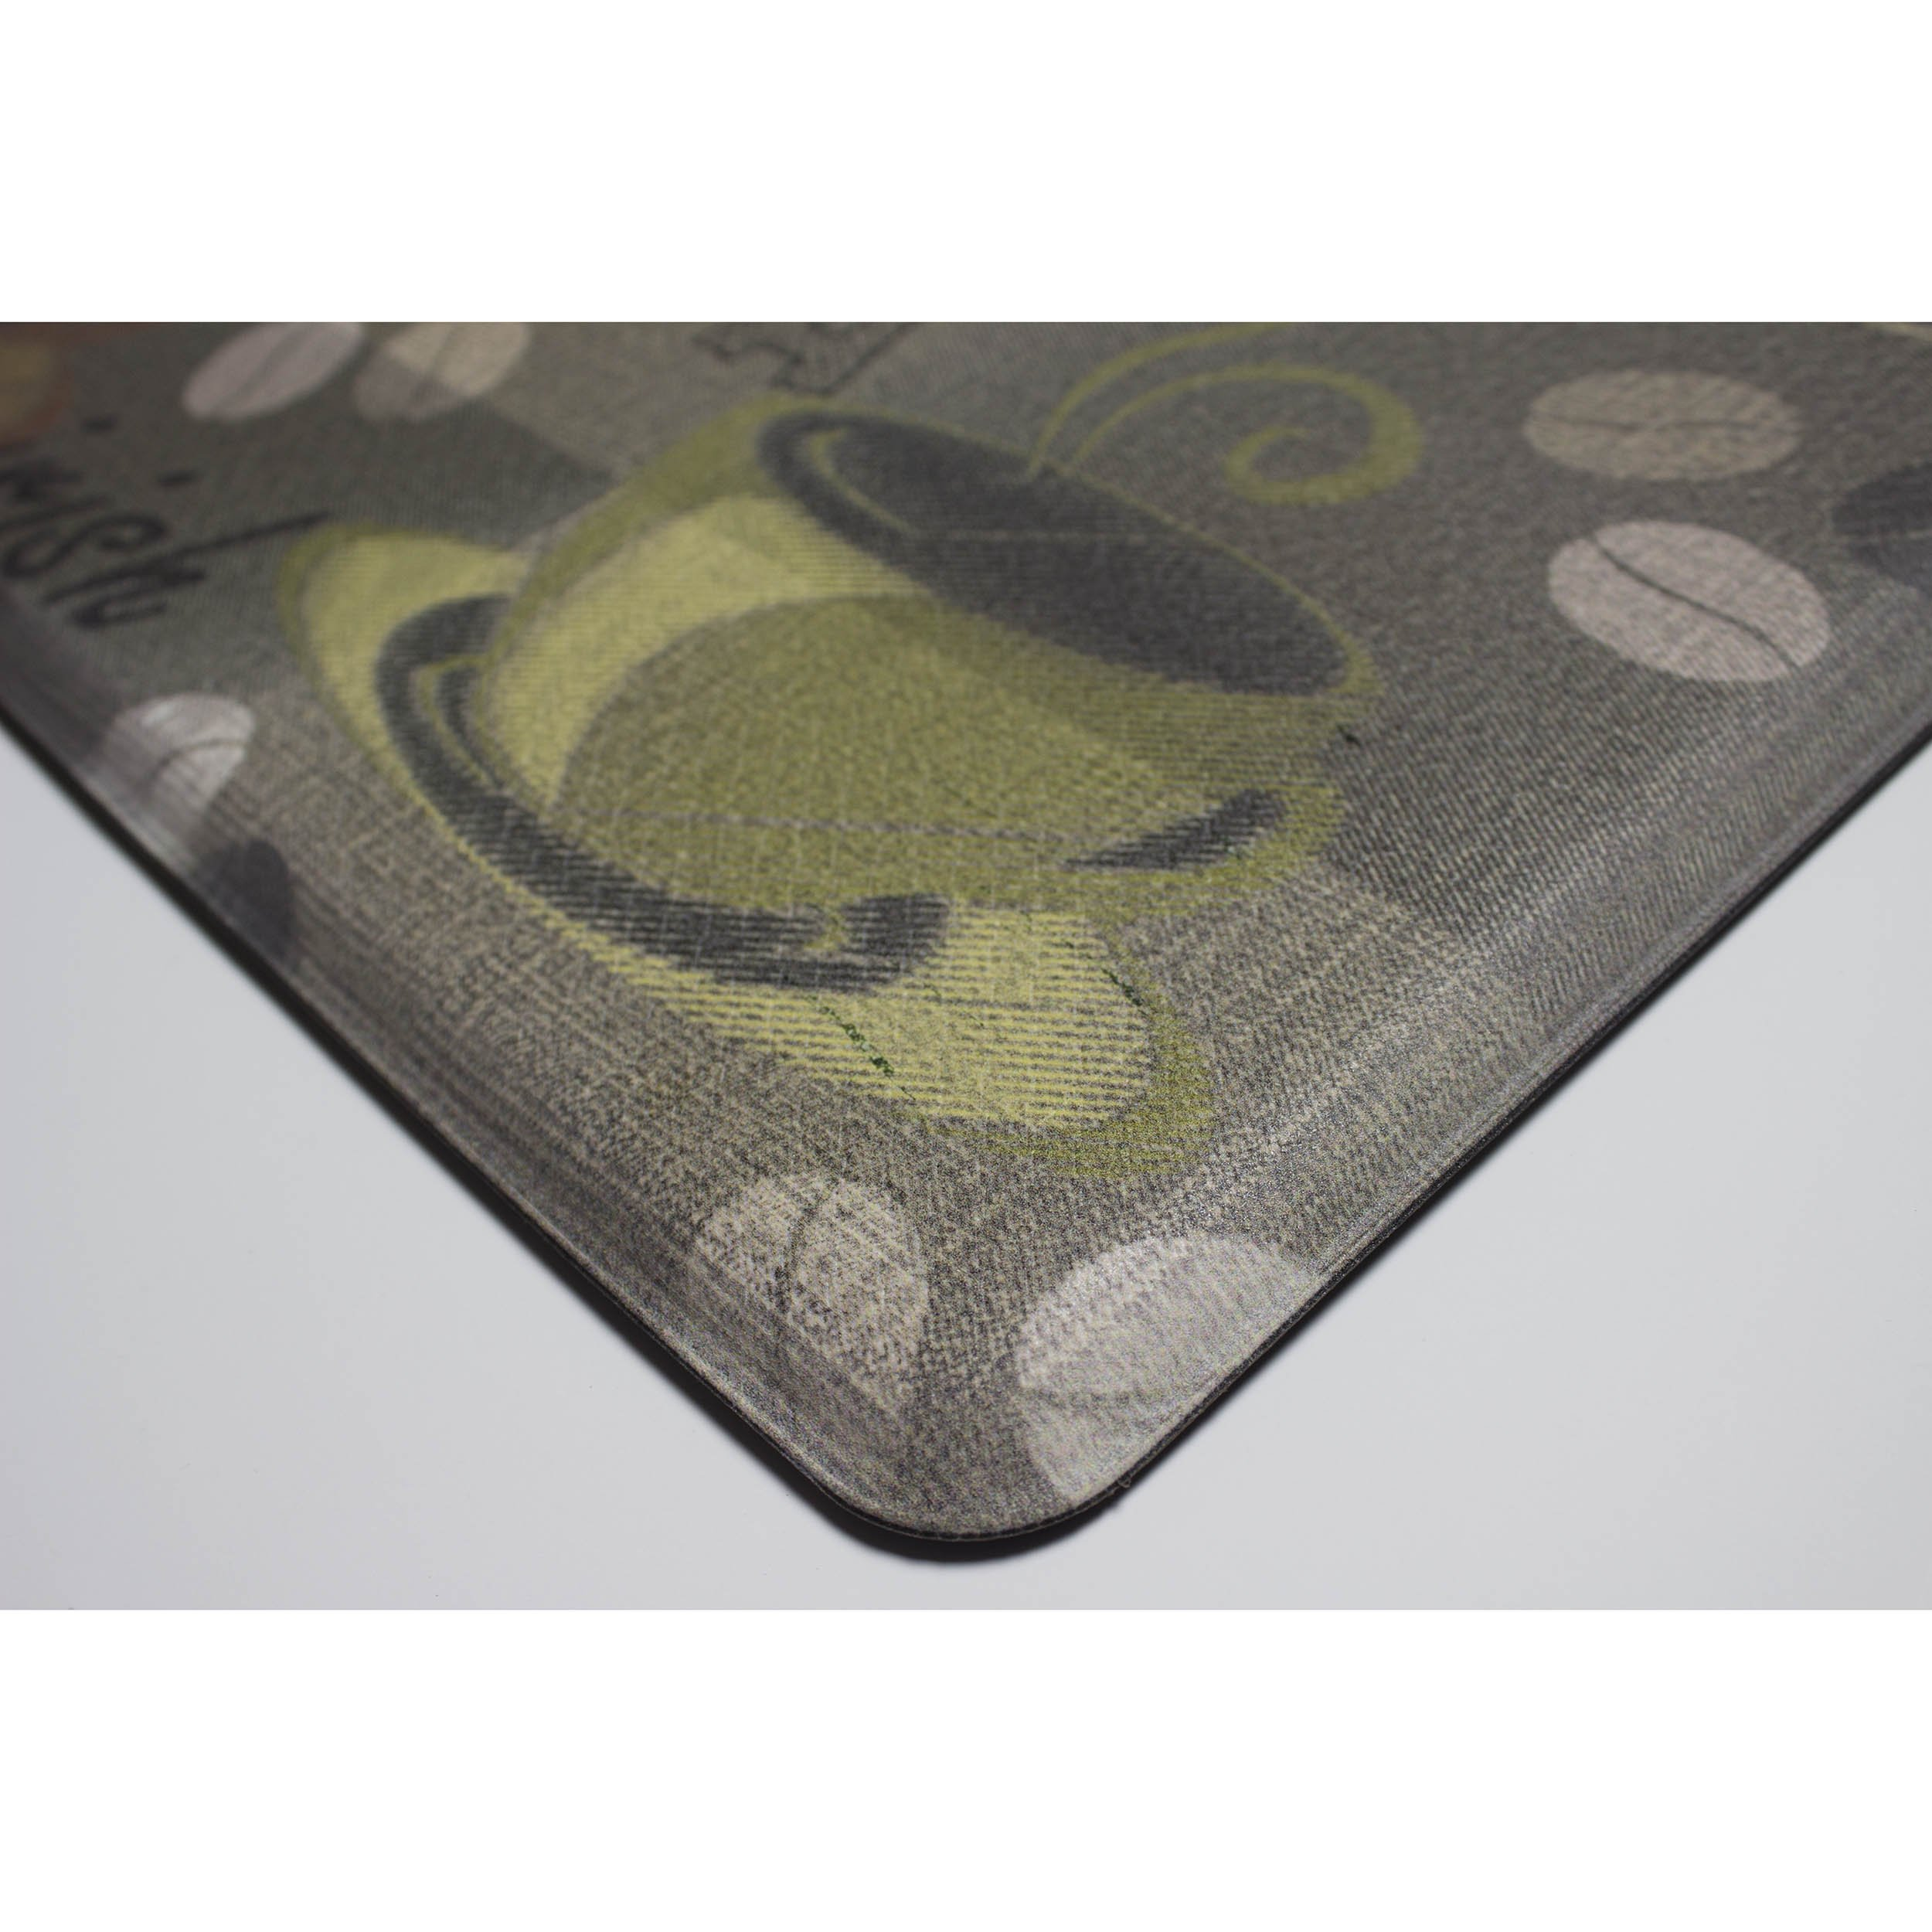 Chef Gear Roasted Coffee Anti-Fatigue Comfort Memory Foam Kitchen Chef Mat, 18 x 30 by Chef Gear (Image #2)